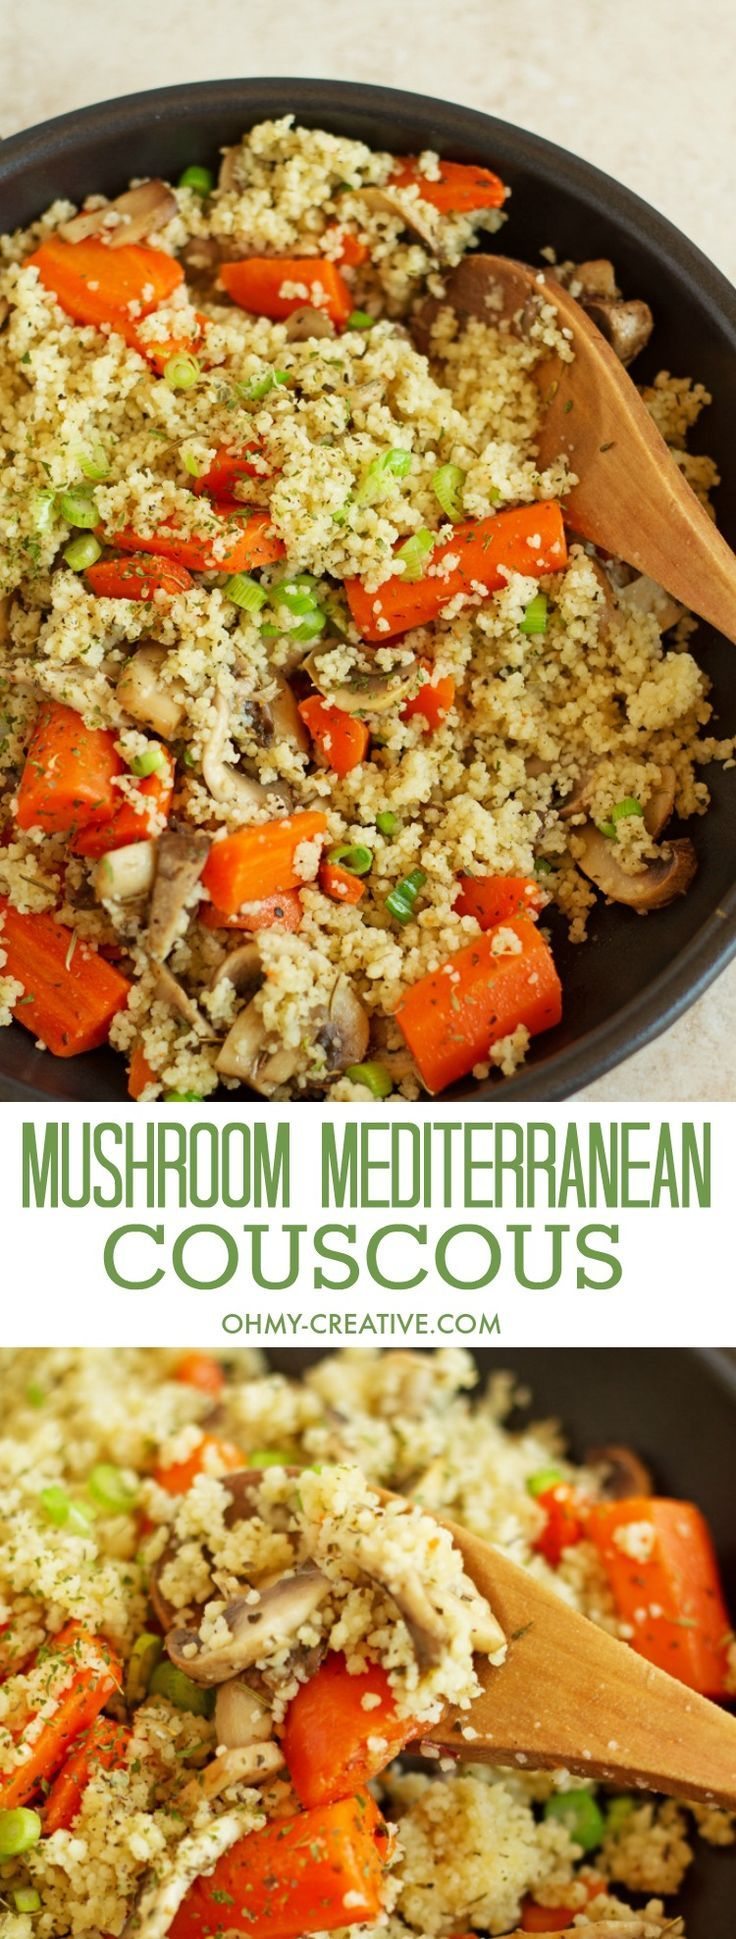 This Mushroom Mediterranean Couscous Recipe with carrots is sauteed with lemon juice and garlic. A meatless, quick and delicious dinner idea or side dish! Add it to your vegetarian recipes! Popular Pins by http://OHMY-CREATIVE.COM